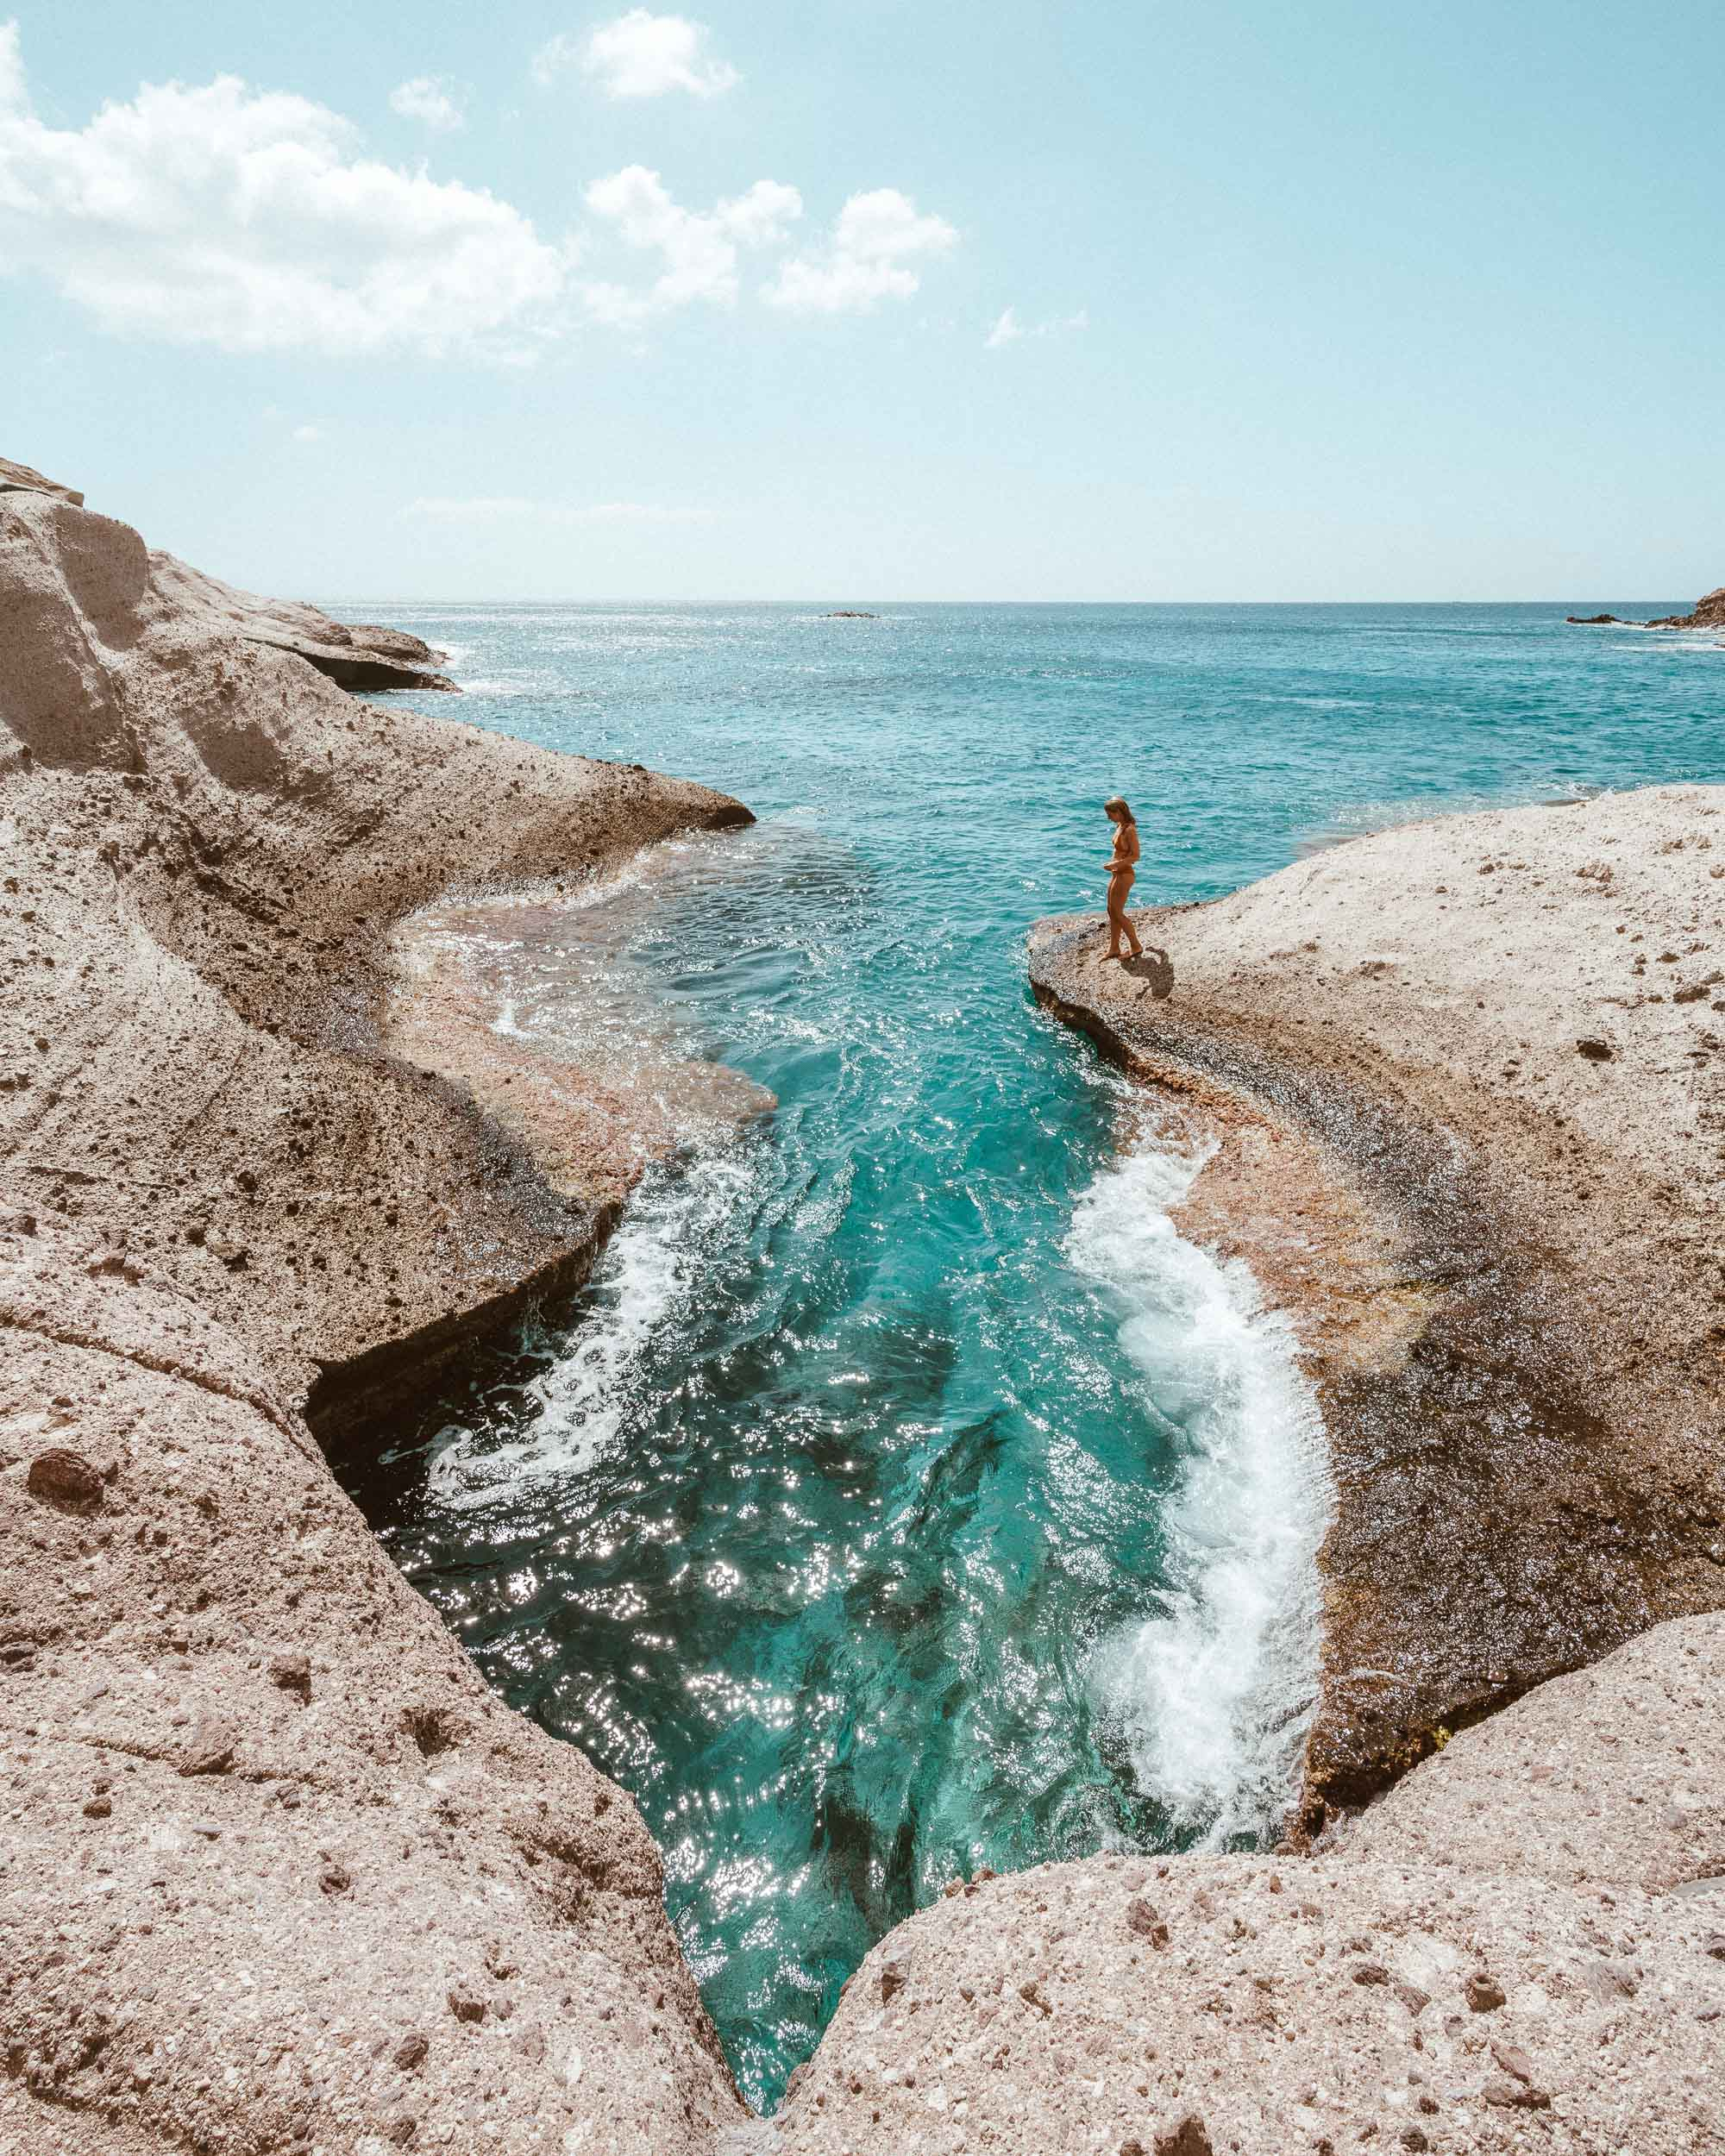 Cliff jumping spot in antiparos via @finduslost